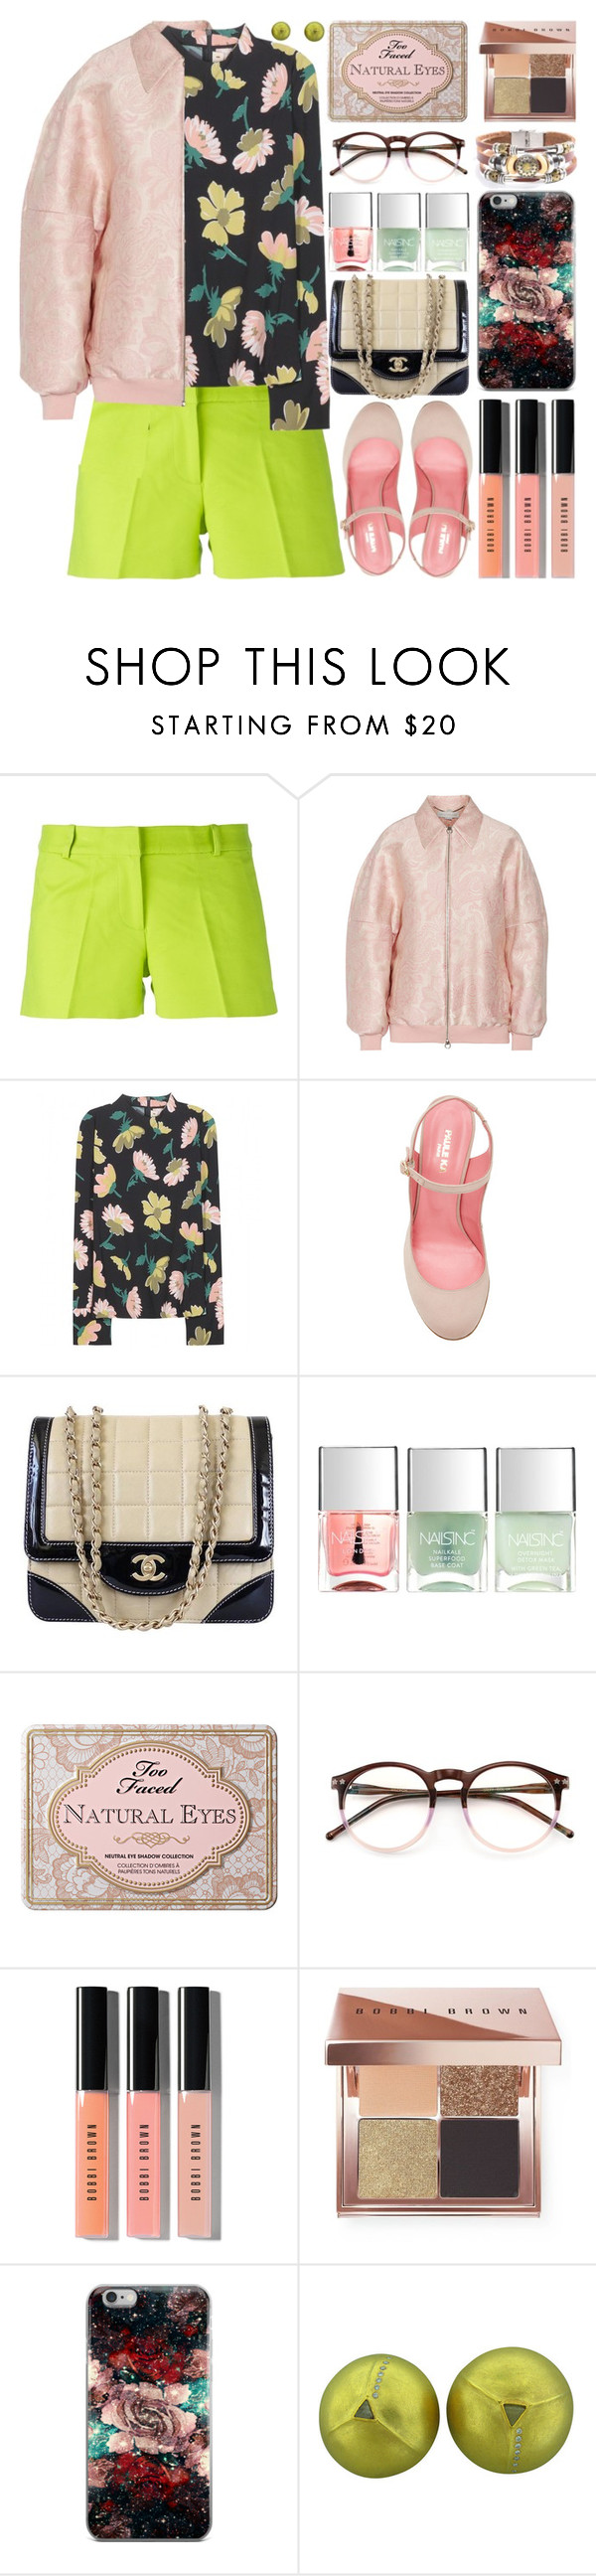 """Fall"" by barbarela11 ❤ liked on Polyvore featuring MICHAEL Michael Kors, STELLA McCARTNEY, Marni, Paule Ka, Chanel, Nails Inc., Too Faced Cosmetics, Wildfox and Bobbi Brown Cosmetics"